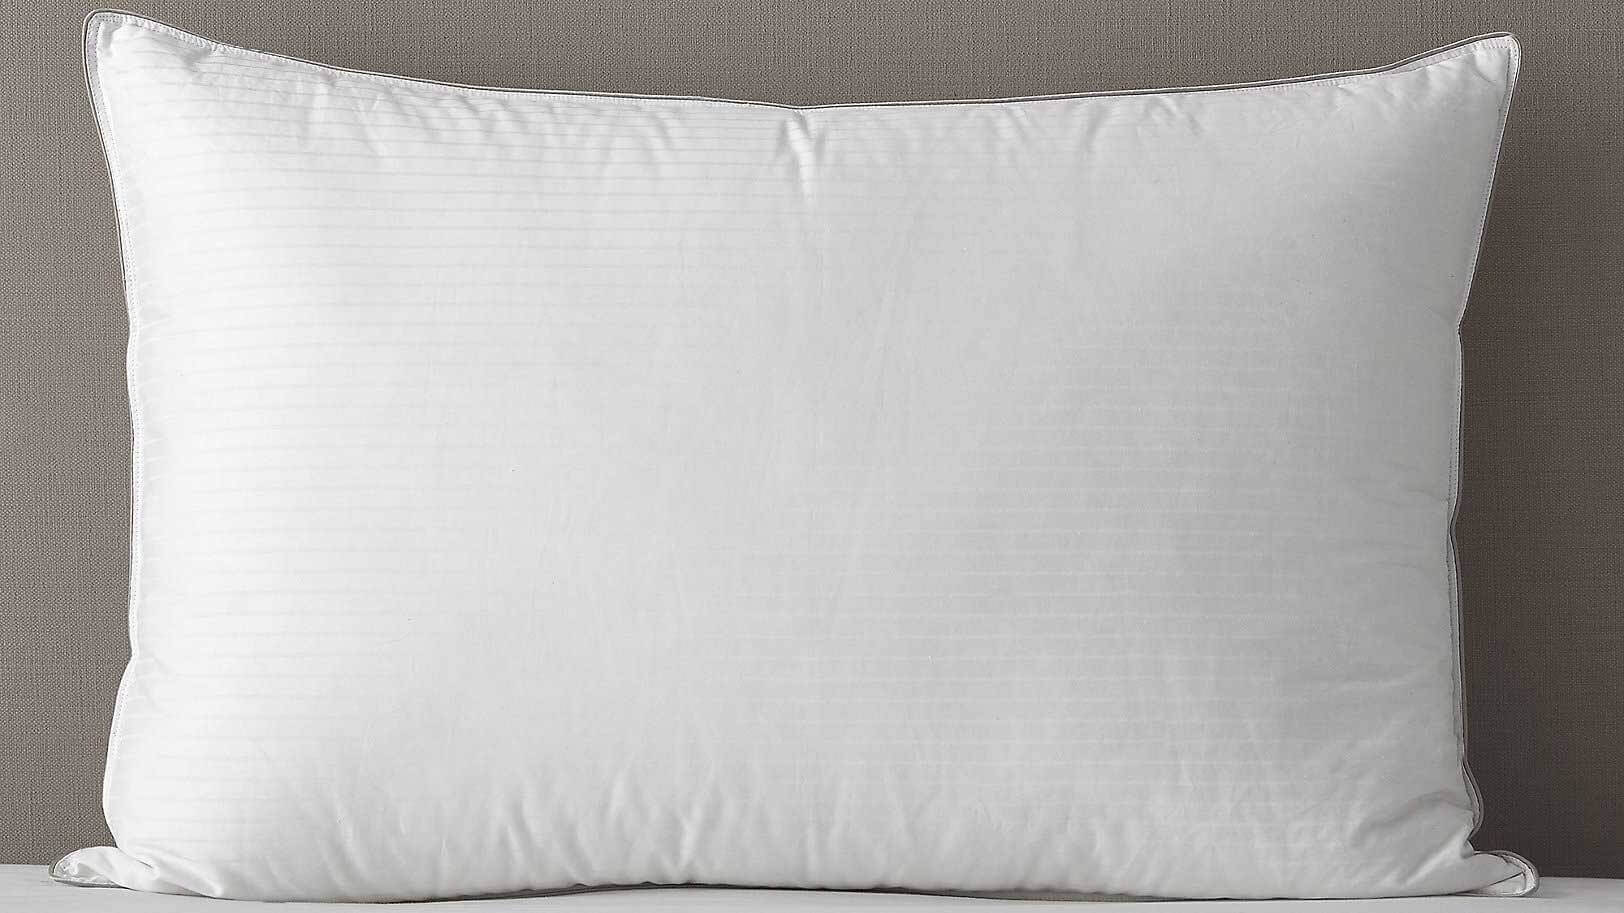 eLuxury Supply Extra Soft Down Filled Pillow